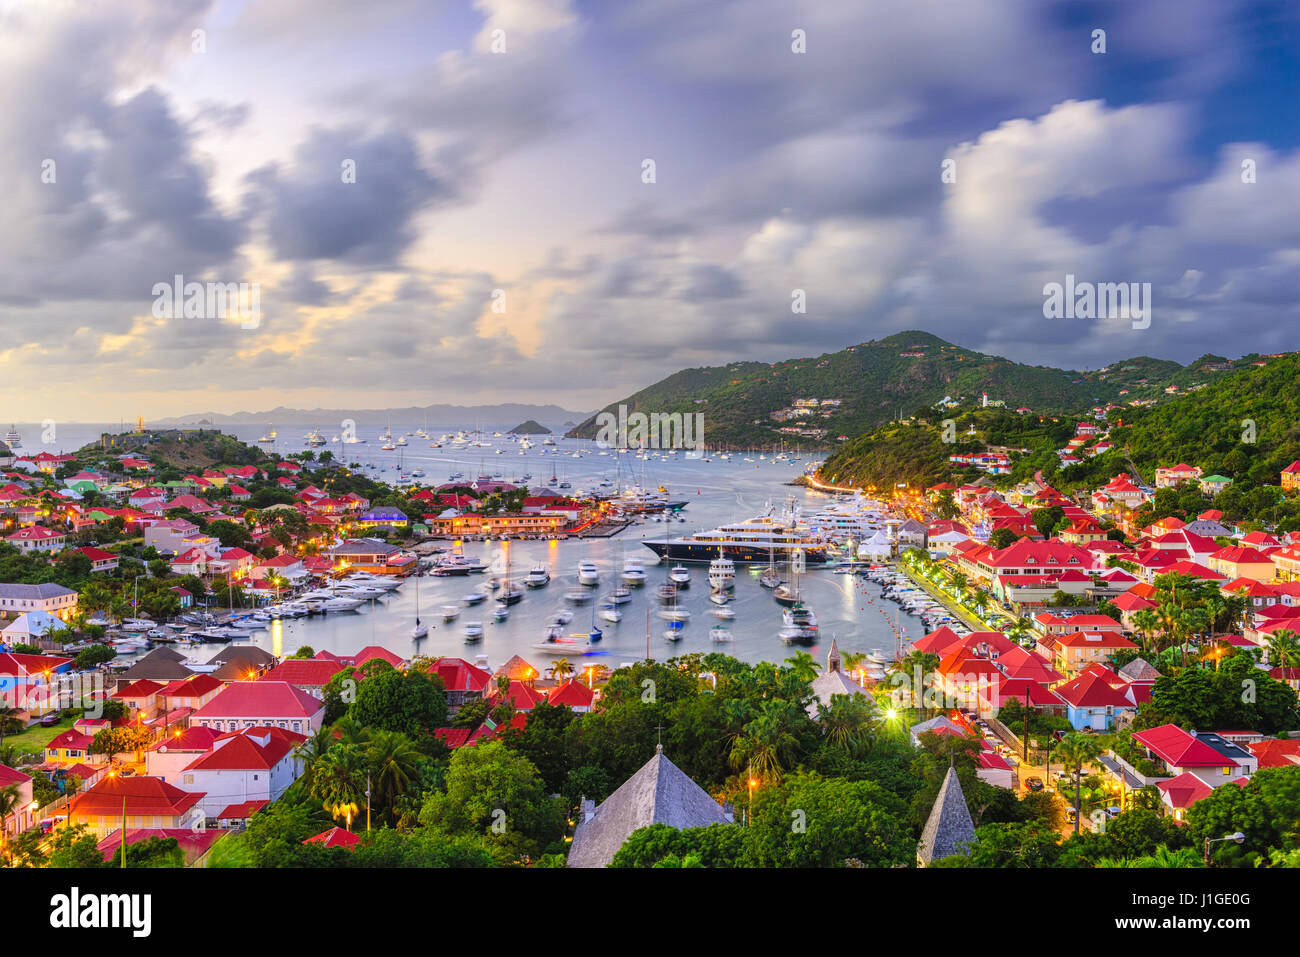 Saint Barthelemy skyline and harbor in the West Indies of the Caribbean. - Stock Image